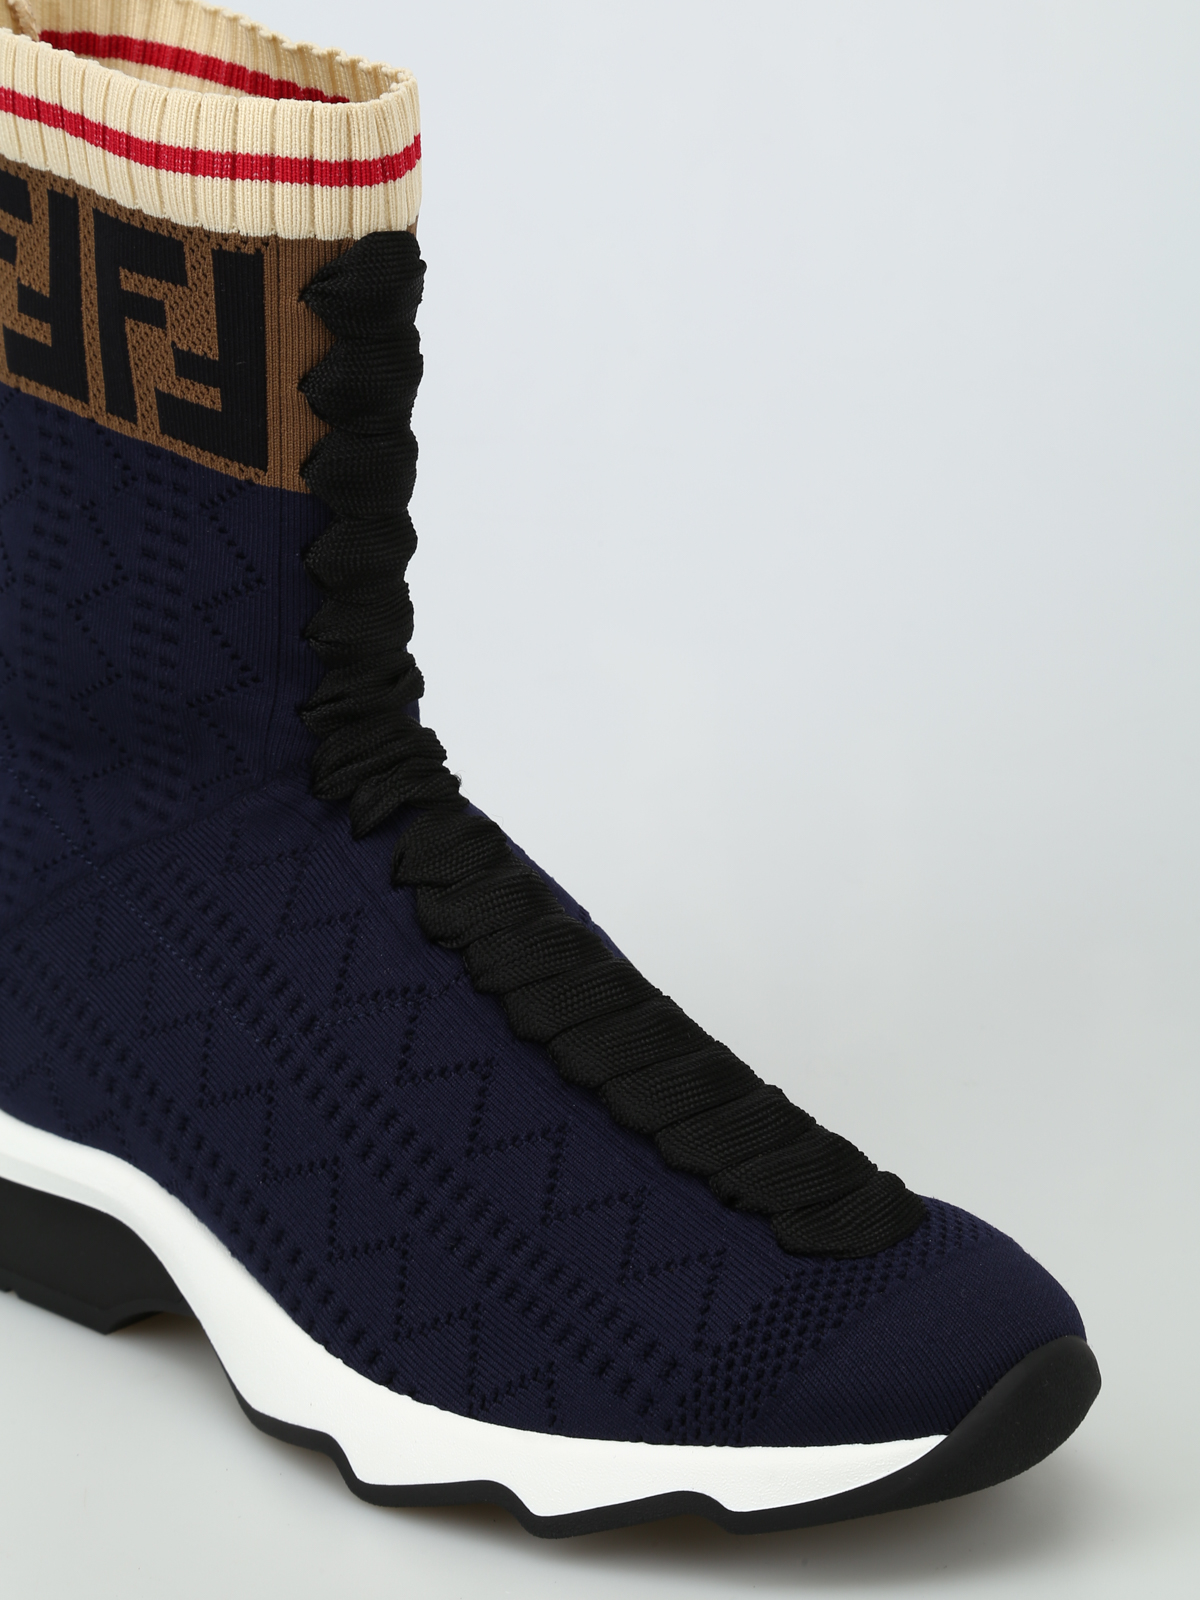 Fendi - Boot-style stretch knitted